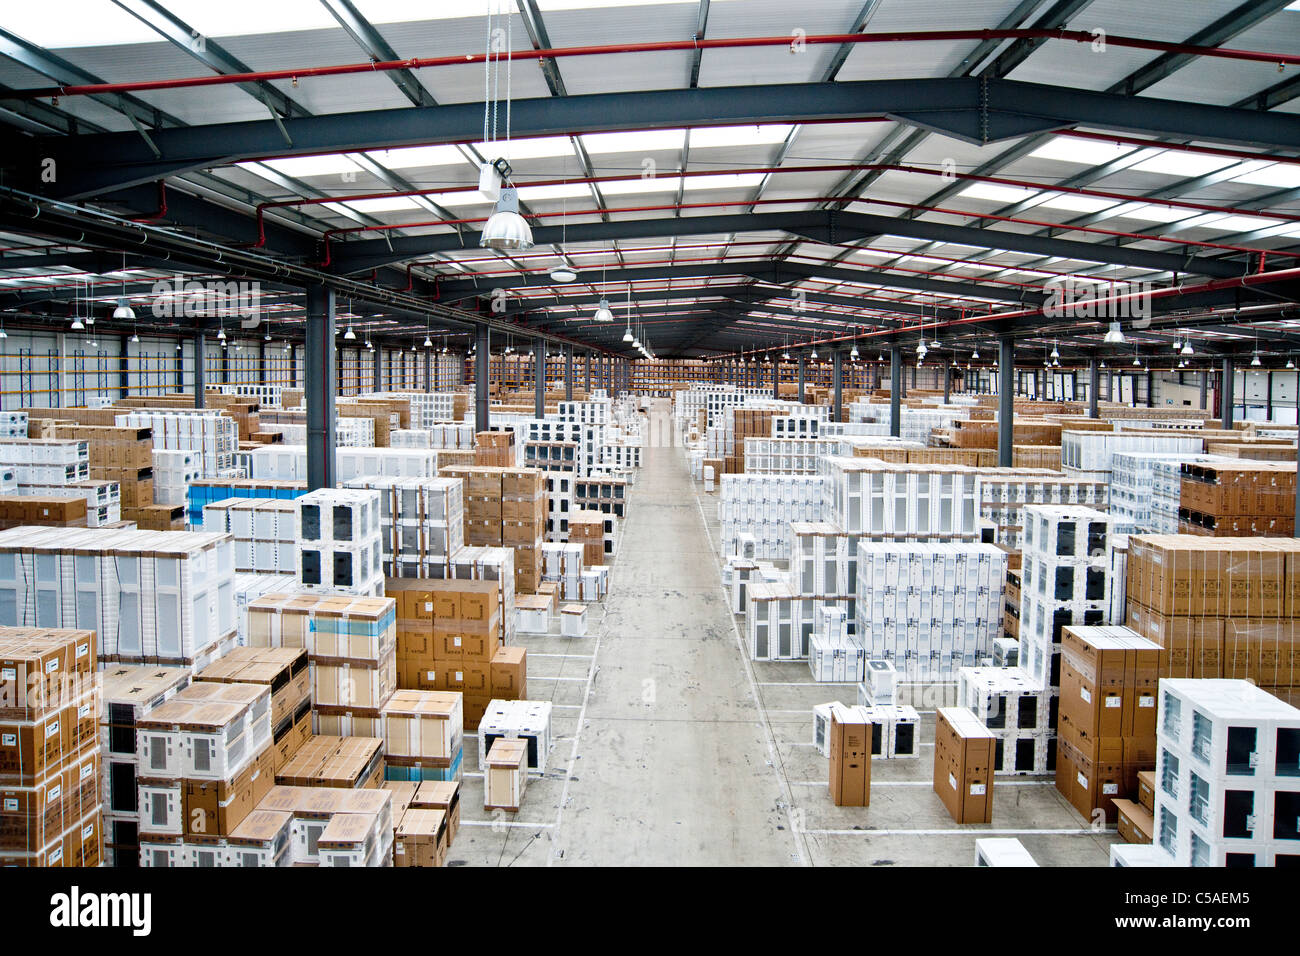 Warehouse storage 2 - Stock Image